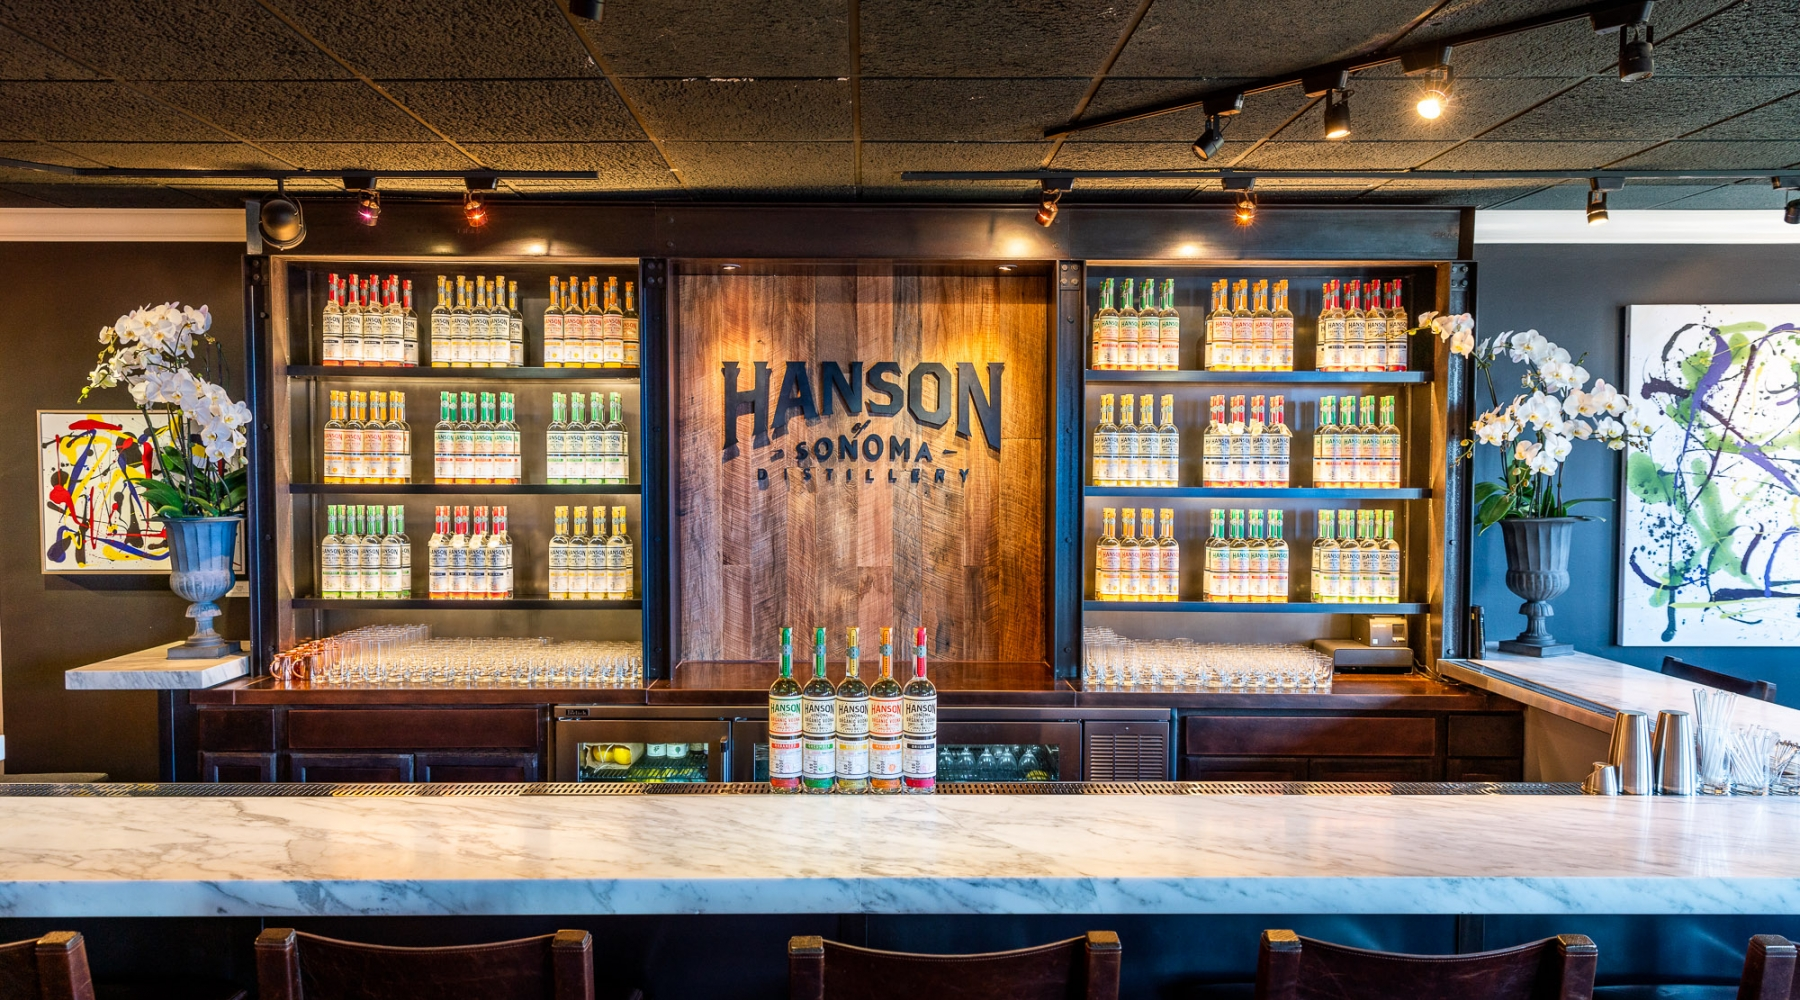 Please enjoy a tasting of Whiskey, Vodka or a cocktail in our beautiful tasting room on the Second floor of Hanson Gallery or Outdoors